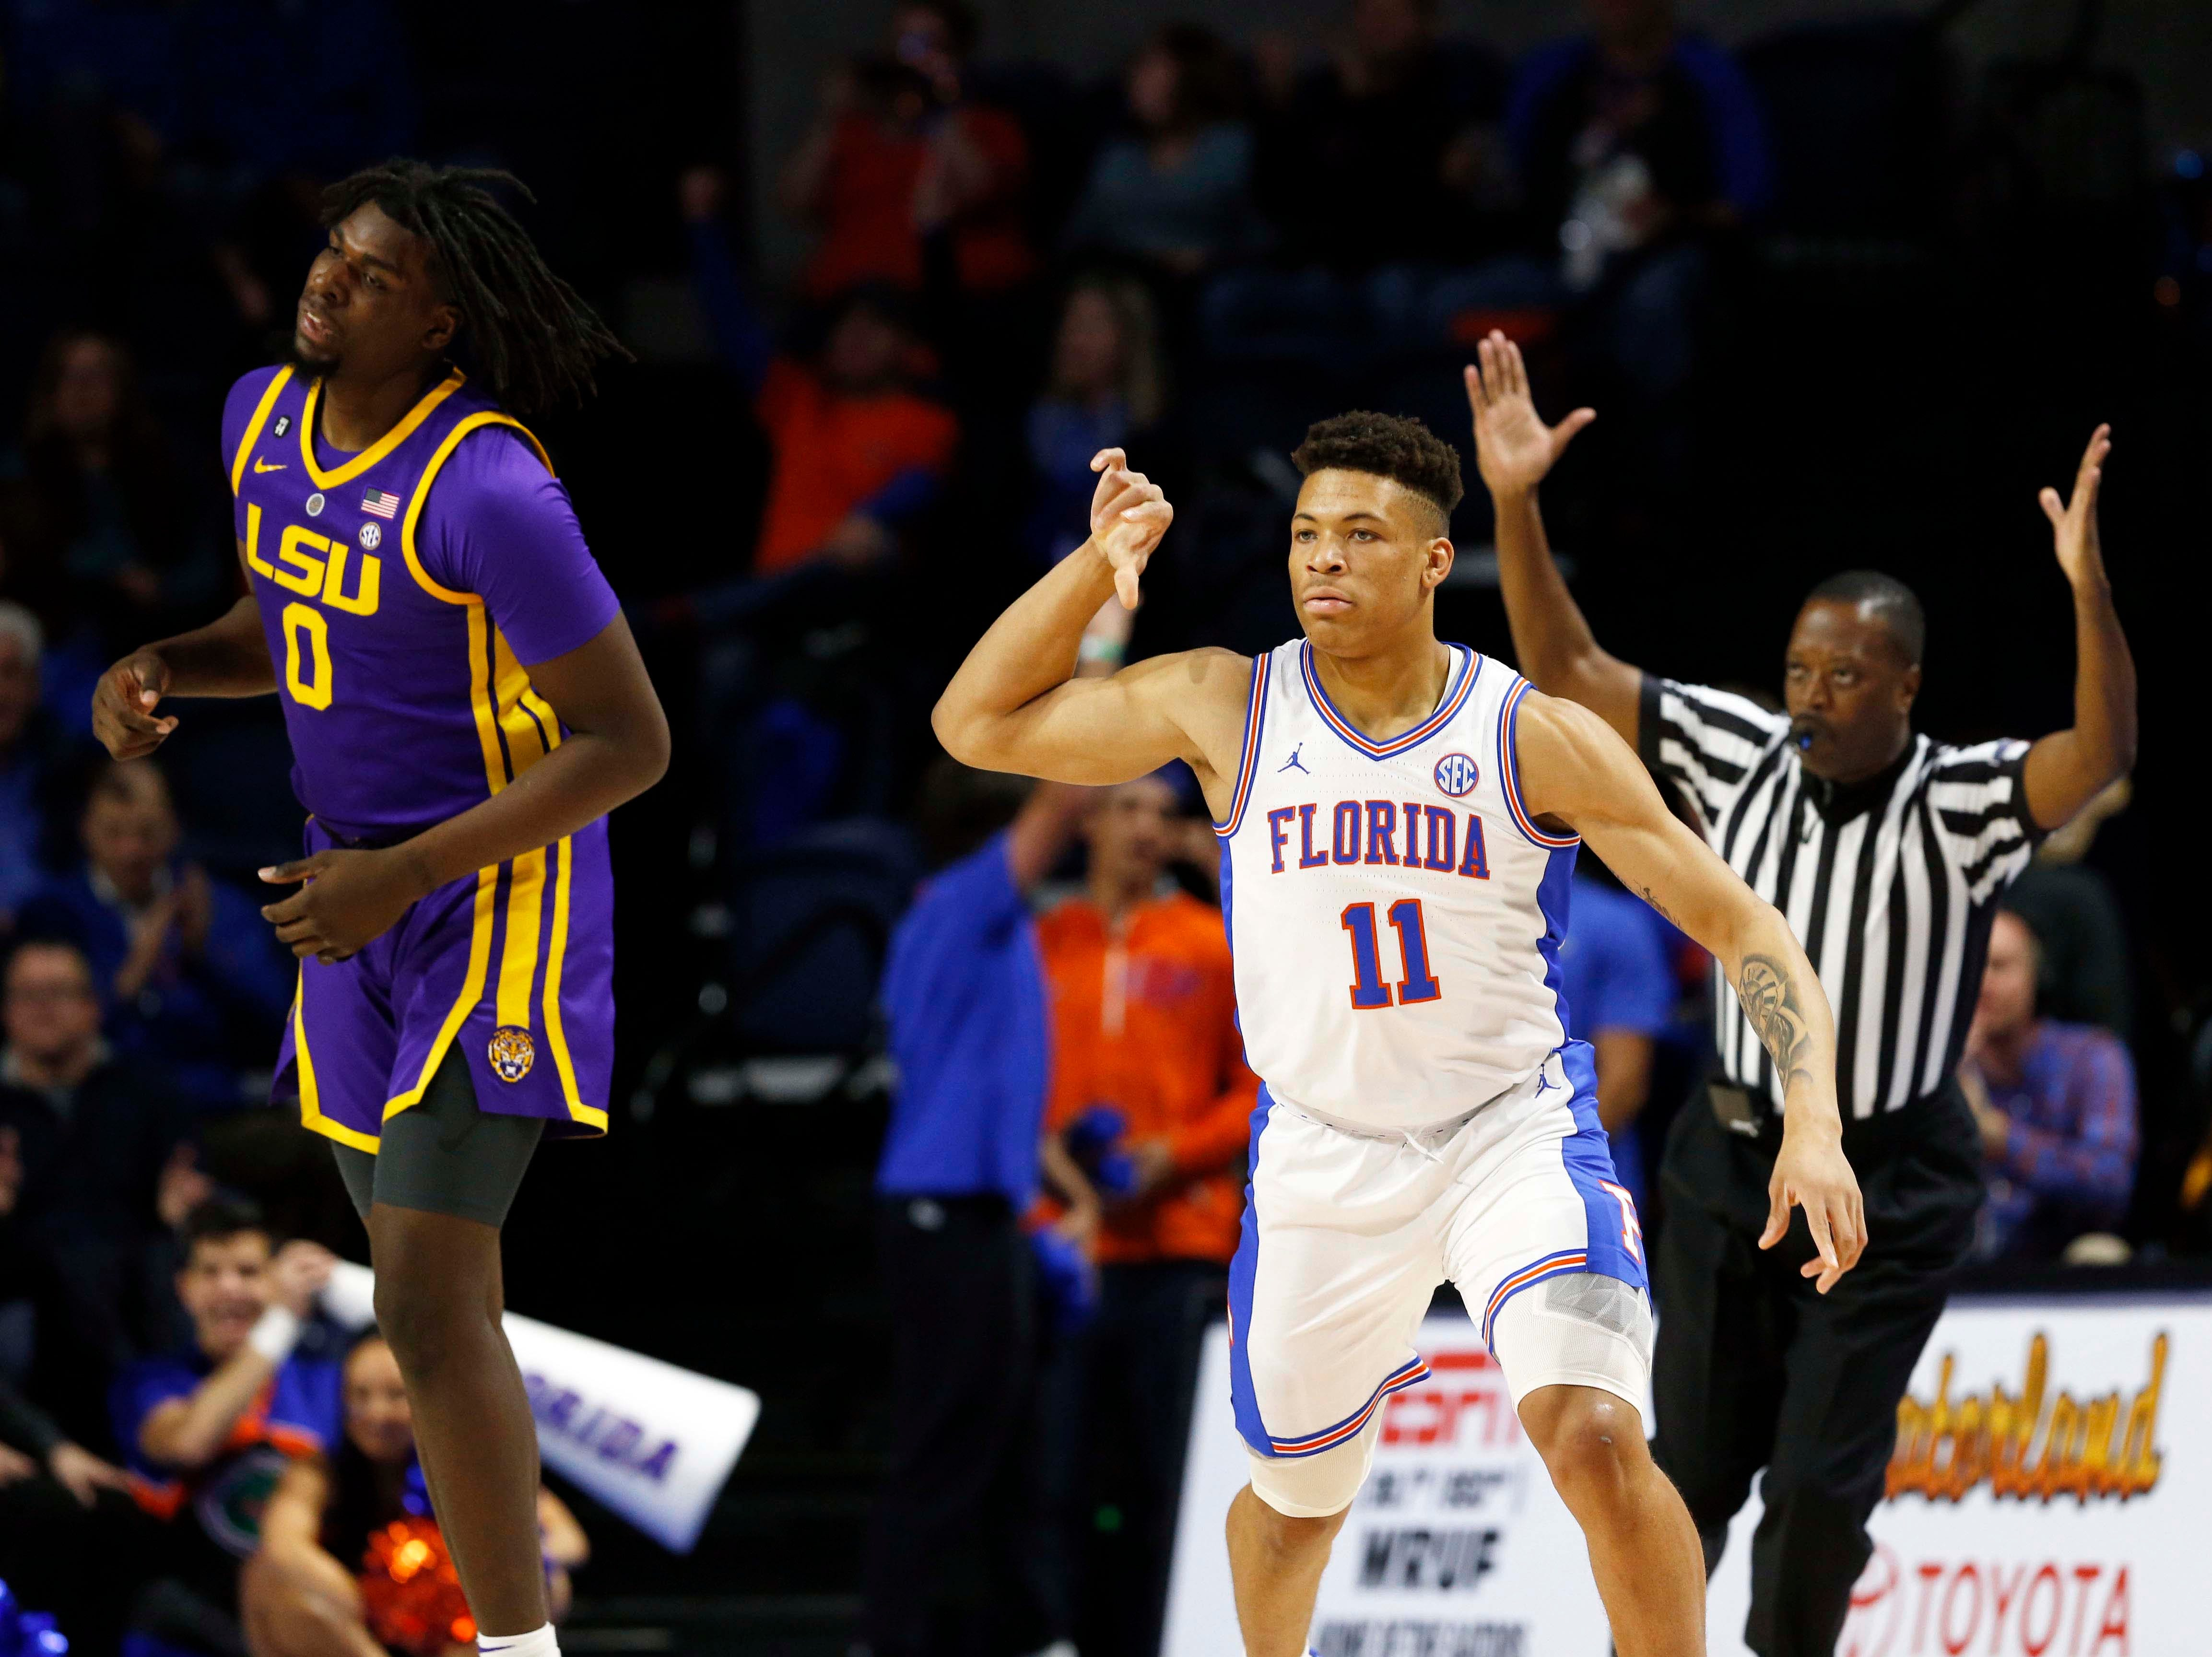 Mar 6, 2019; Gainesville, FL, USA; Florida Gators forward Keyontae Johnson (11) celebrates as he makes a three pointer against the LSU Tigers during the first half at Exactech Arena. Mandatory Credit: Kim Klement-USA TODAY Sports